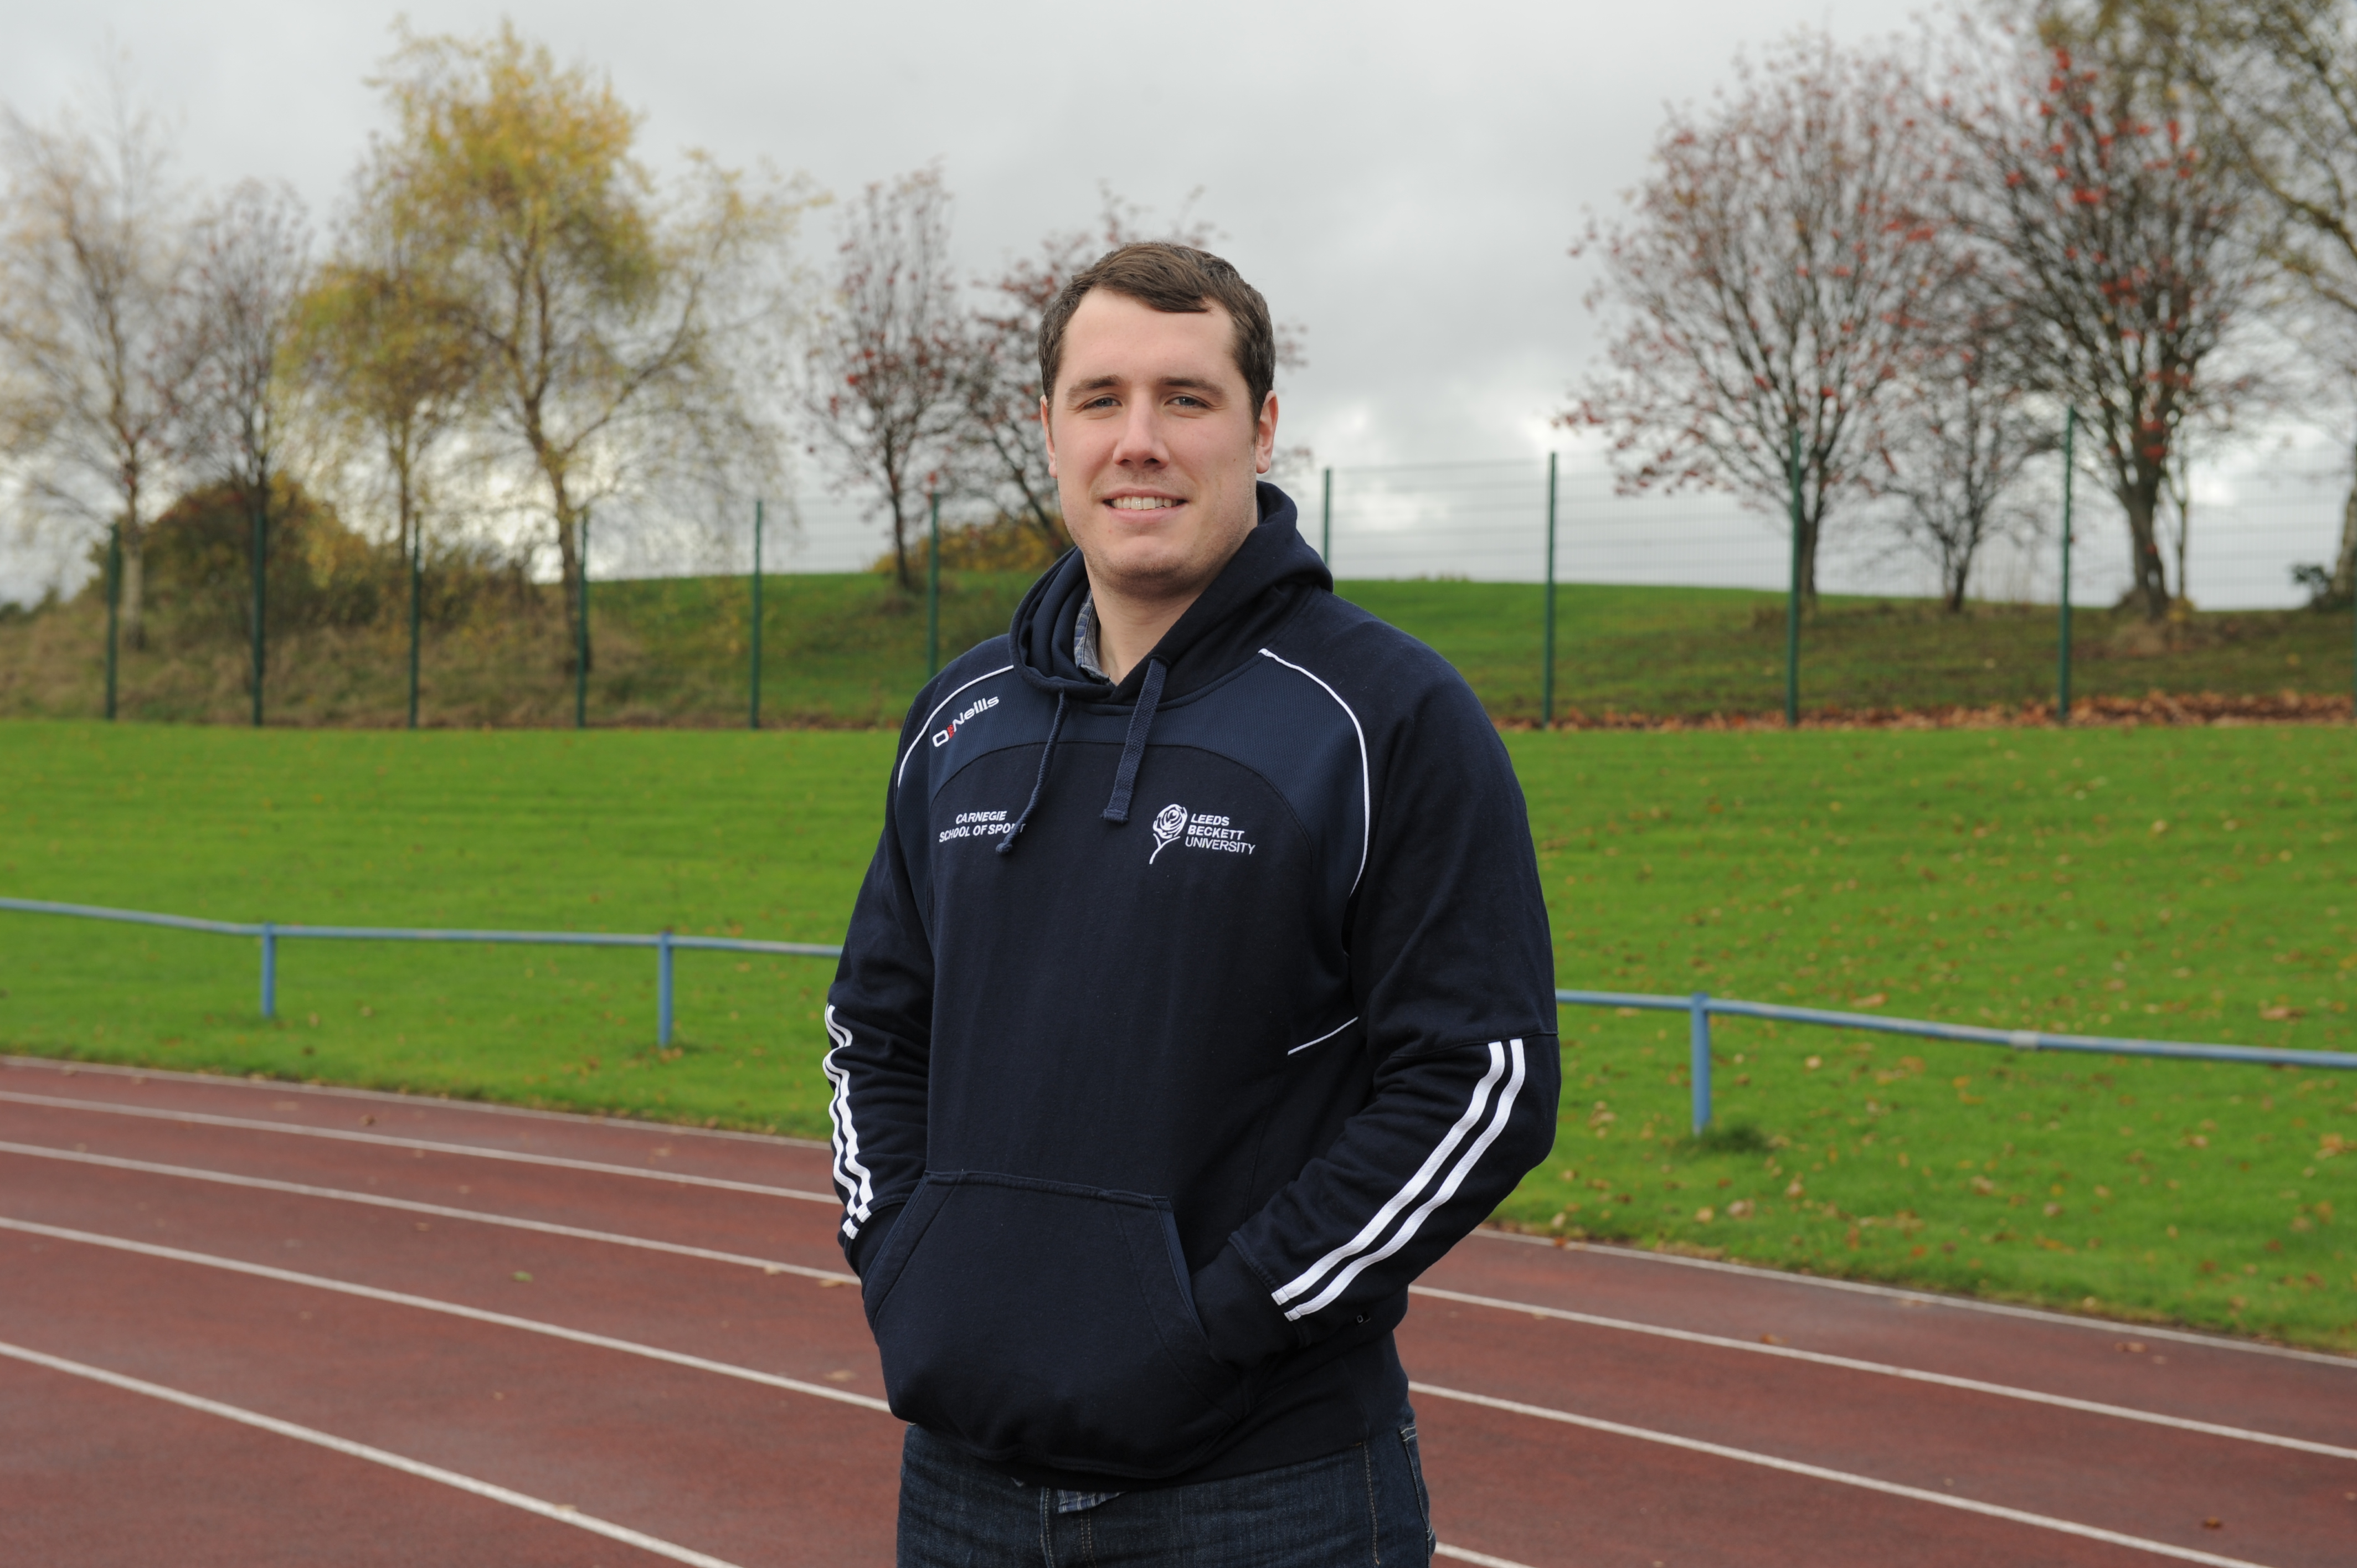 Ross Shand, MSc Psychology of Sport and Exercise (2014) Qualification in Sport and Exercise Psychology (Stage 2)